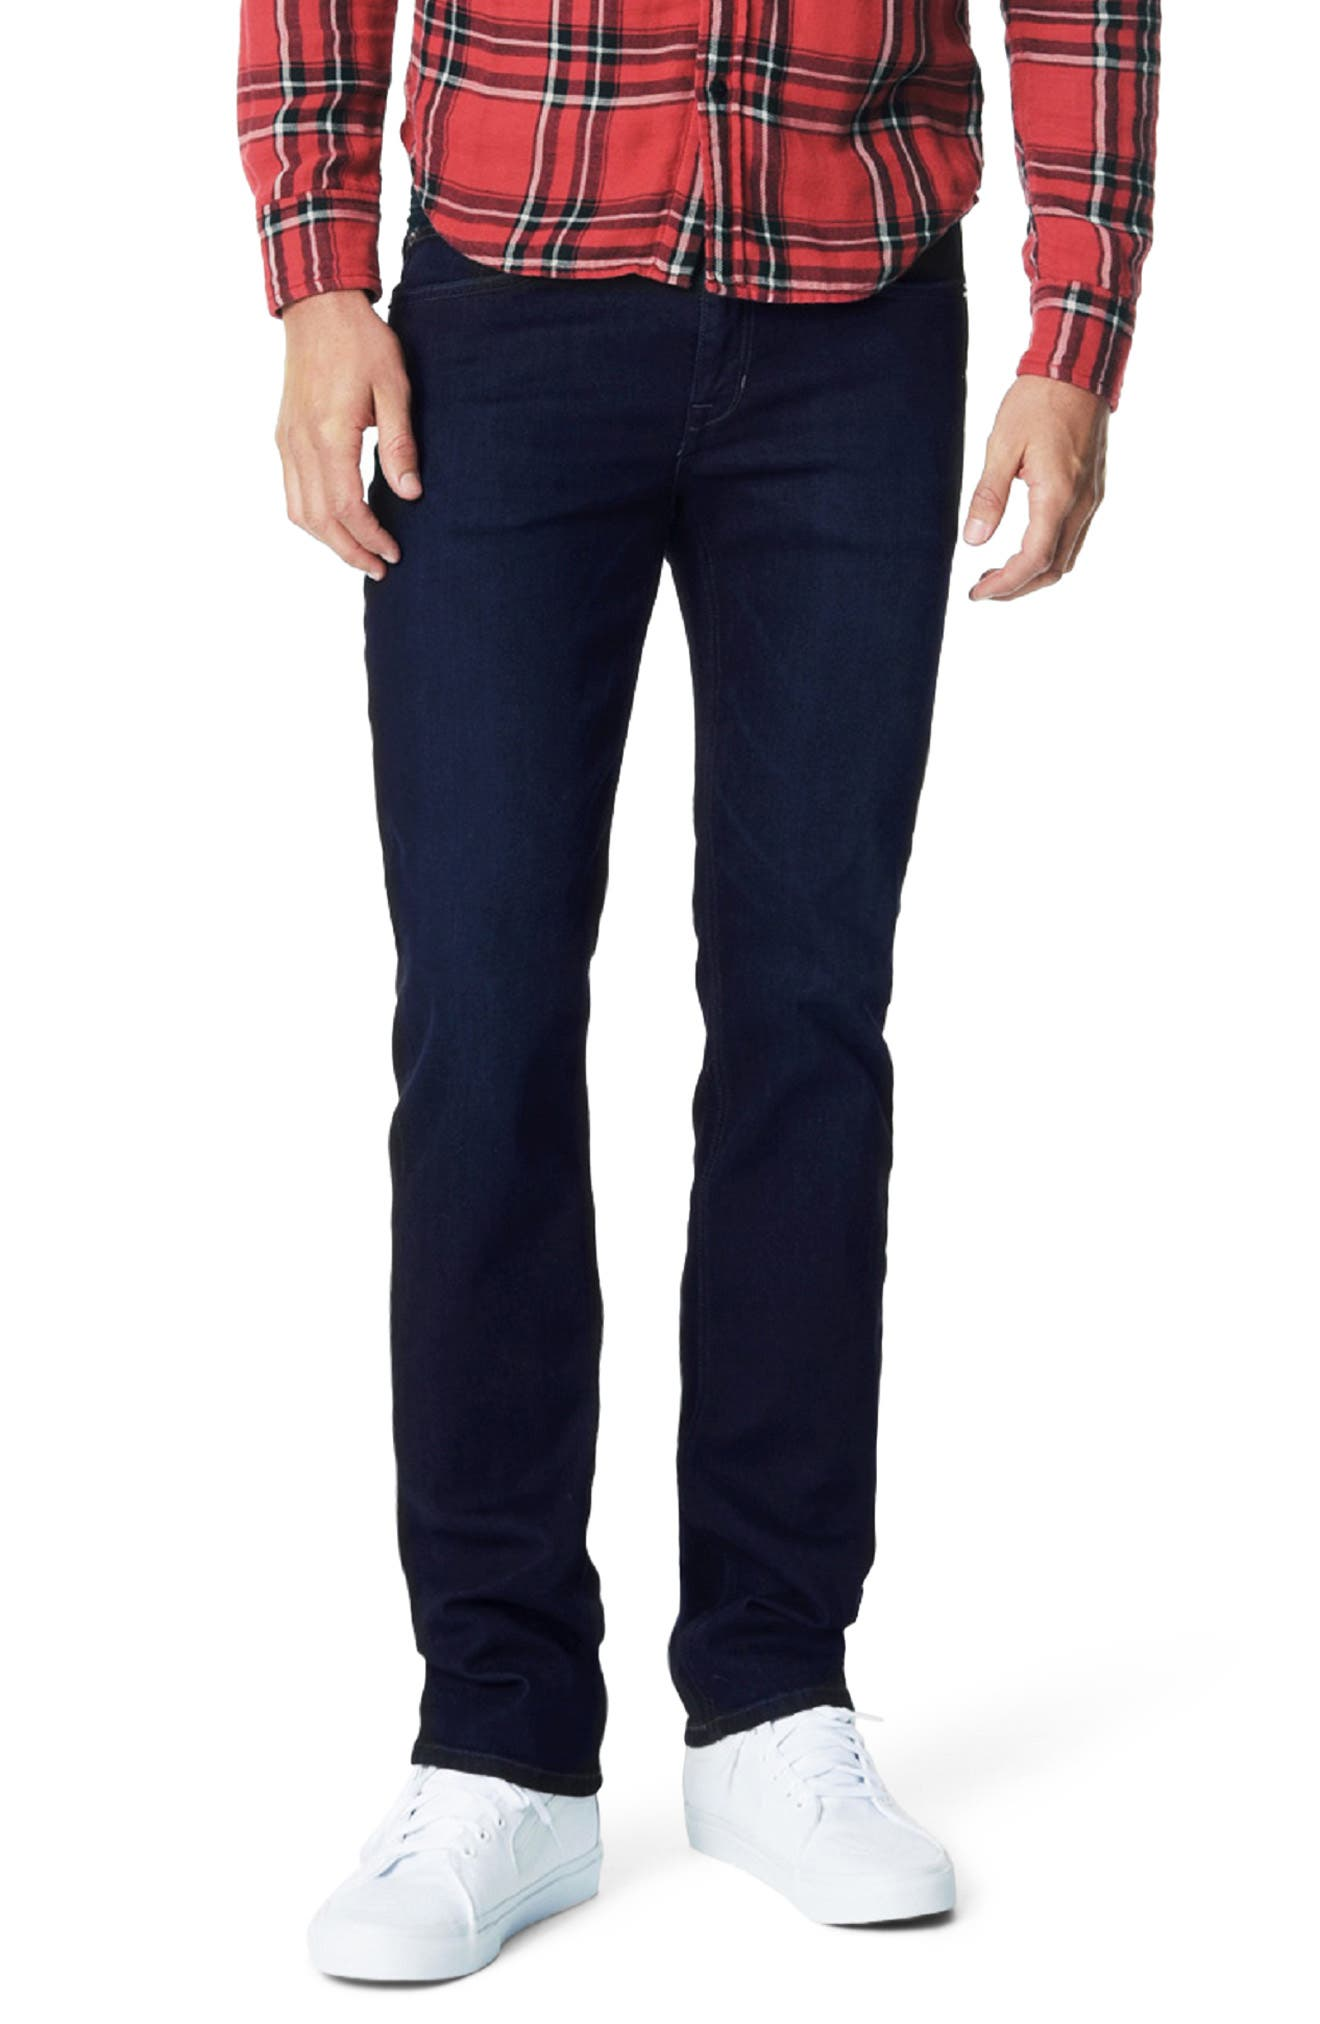 Brixton Slim Straight Leg Jeans,                             Main thumbnail 1, color,                             LEIB